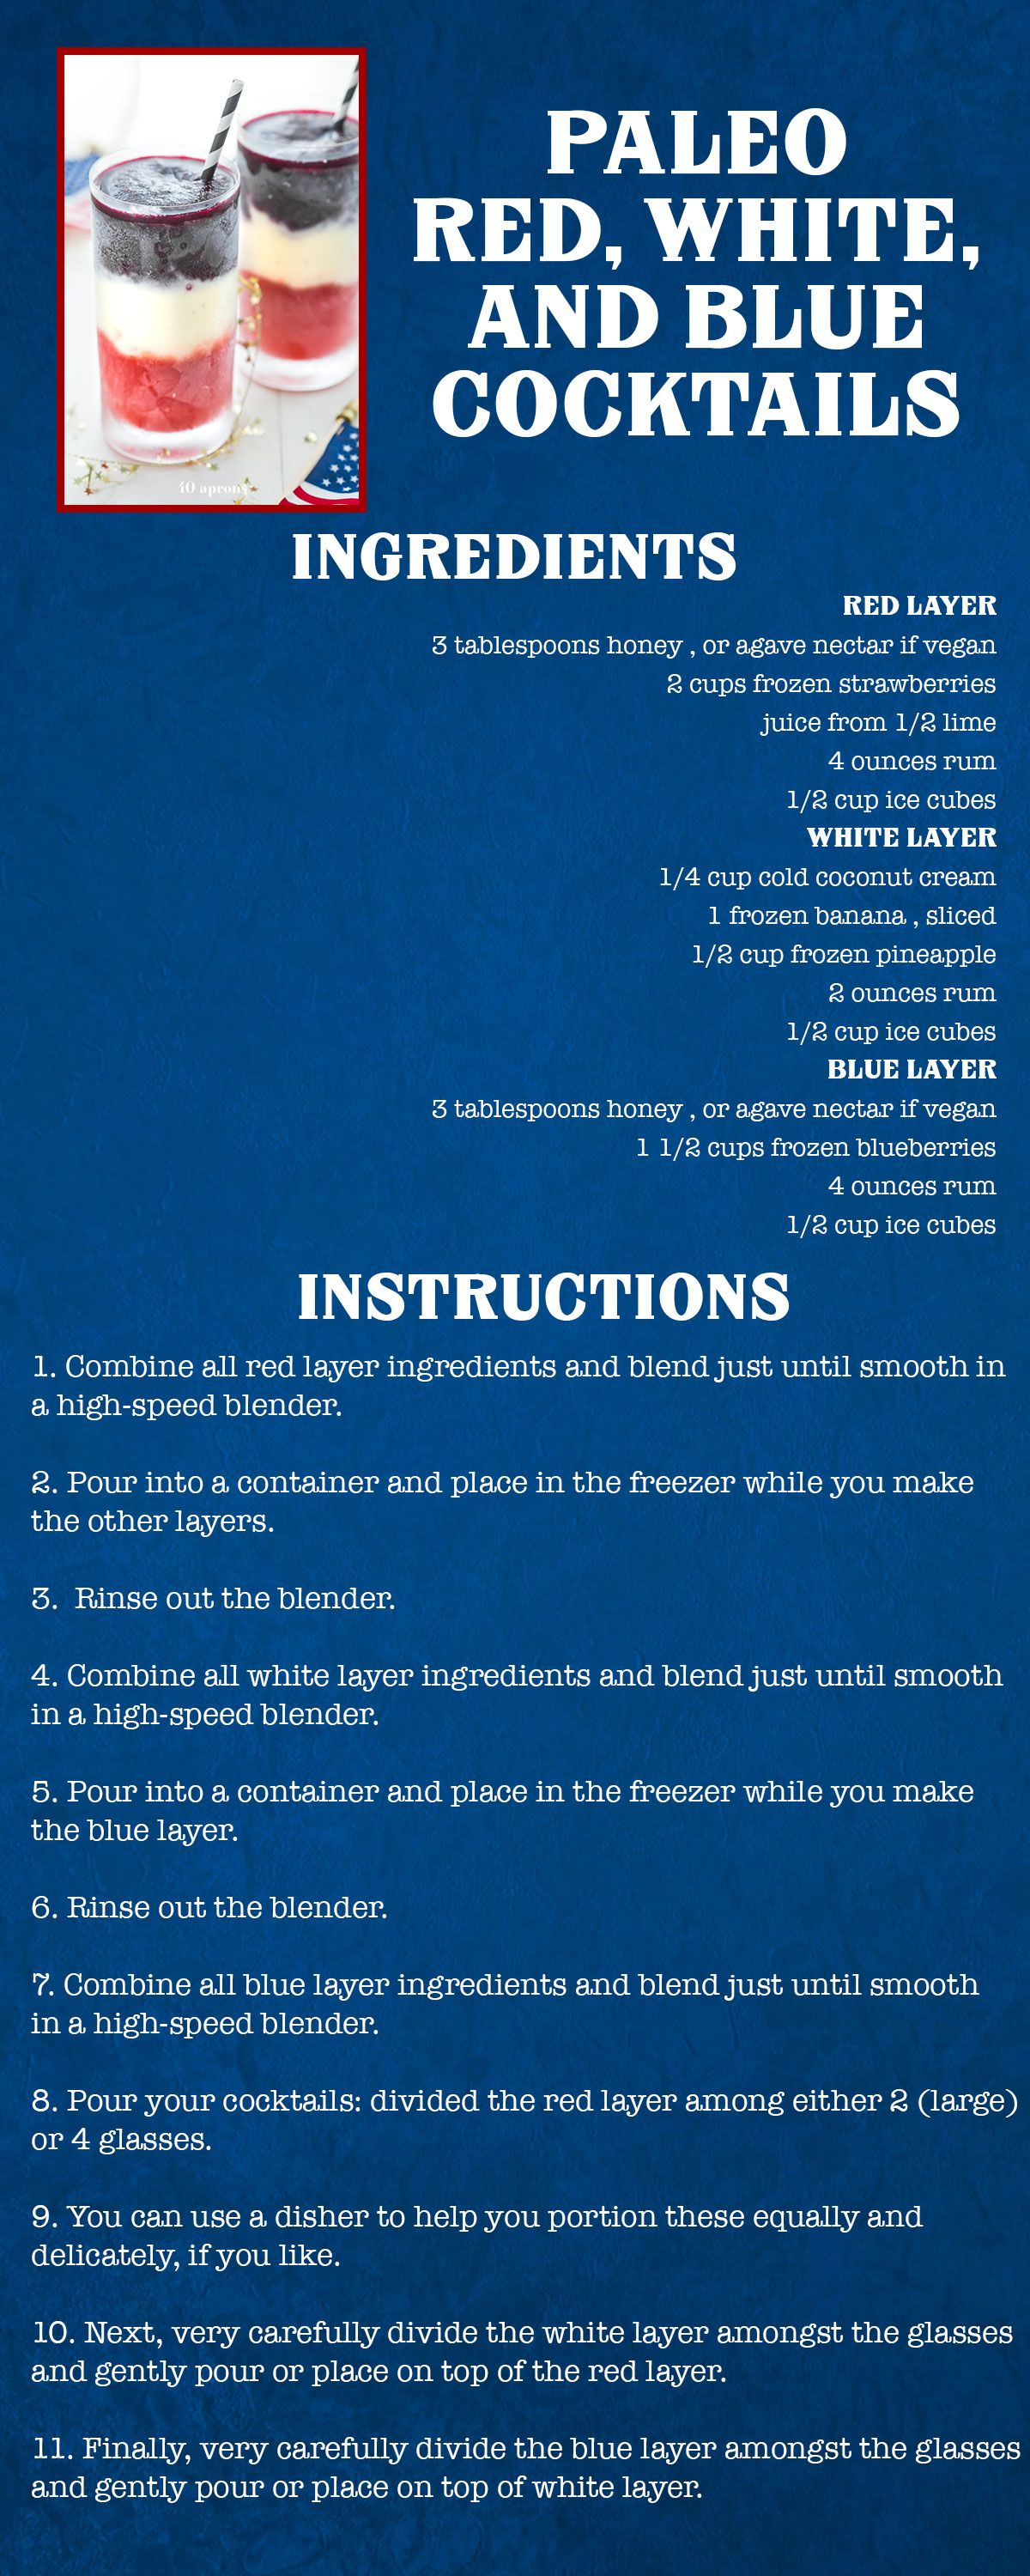 Paleo Red, White, and Blue Cocktails Recipe Card